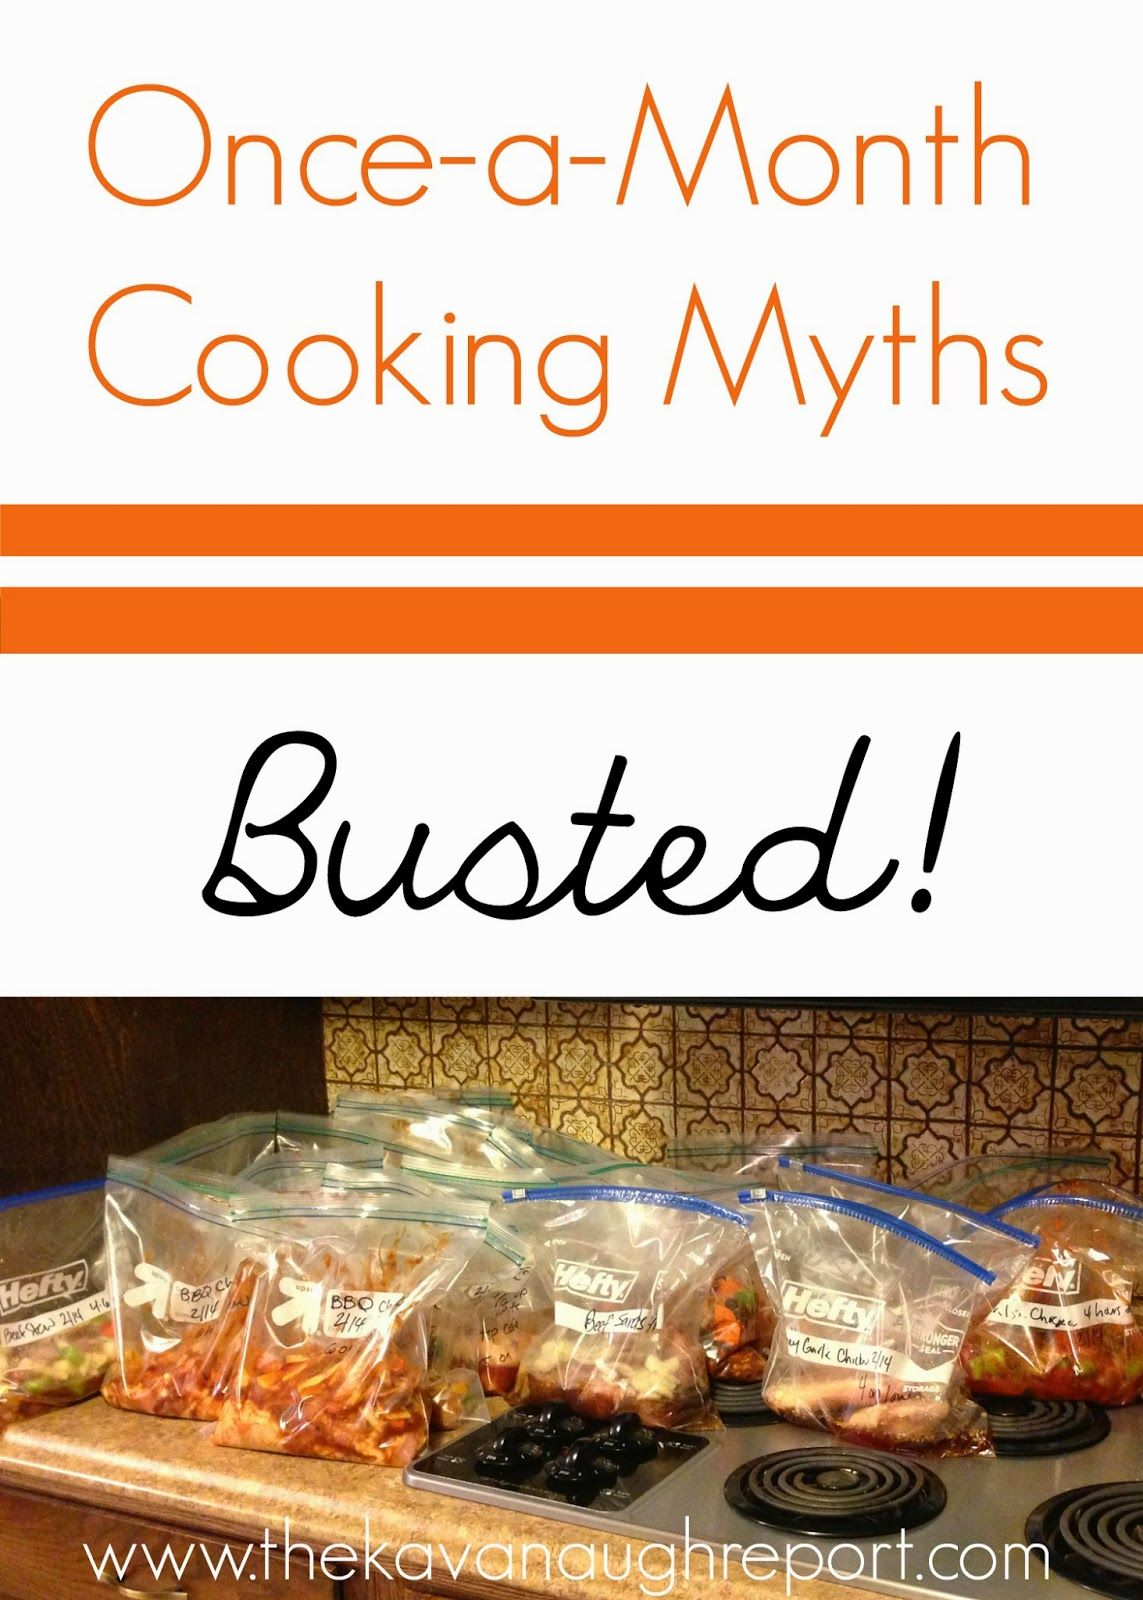 Once-a-Month Cooking Myths Busted